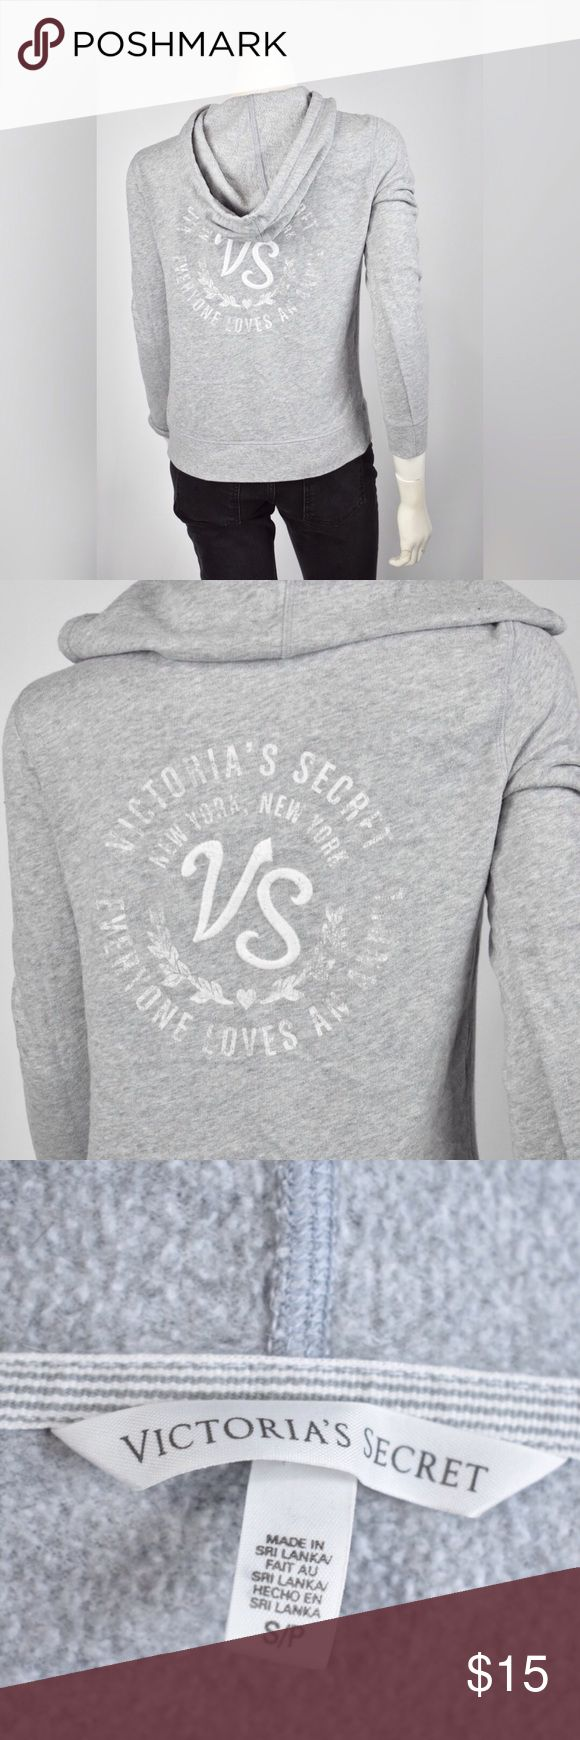 Victoria's Secret Gray Zipper Hoodie small Brand: VS  SIZE: Ladies small Light weight hoodie zip up, light gray  back: Victoria Secret New York New York Everyone loves an angle embroidered  VS Condition: silk screen faded worn away; some loose threading; worn and washed mult. times - still in wearable condition Material:60% cotton 40% poly * Measurements are garment laying flat chest: 18  length: 23..5 Sleeve: 24 Victoria's Secret Tops Sweatshirts & Hoodies